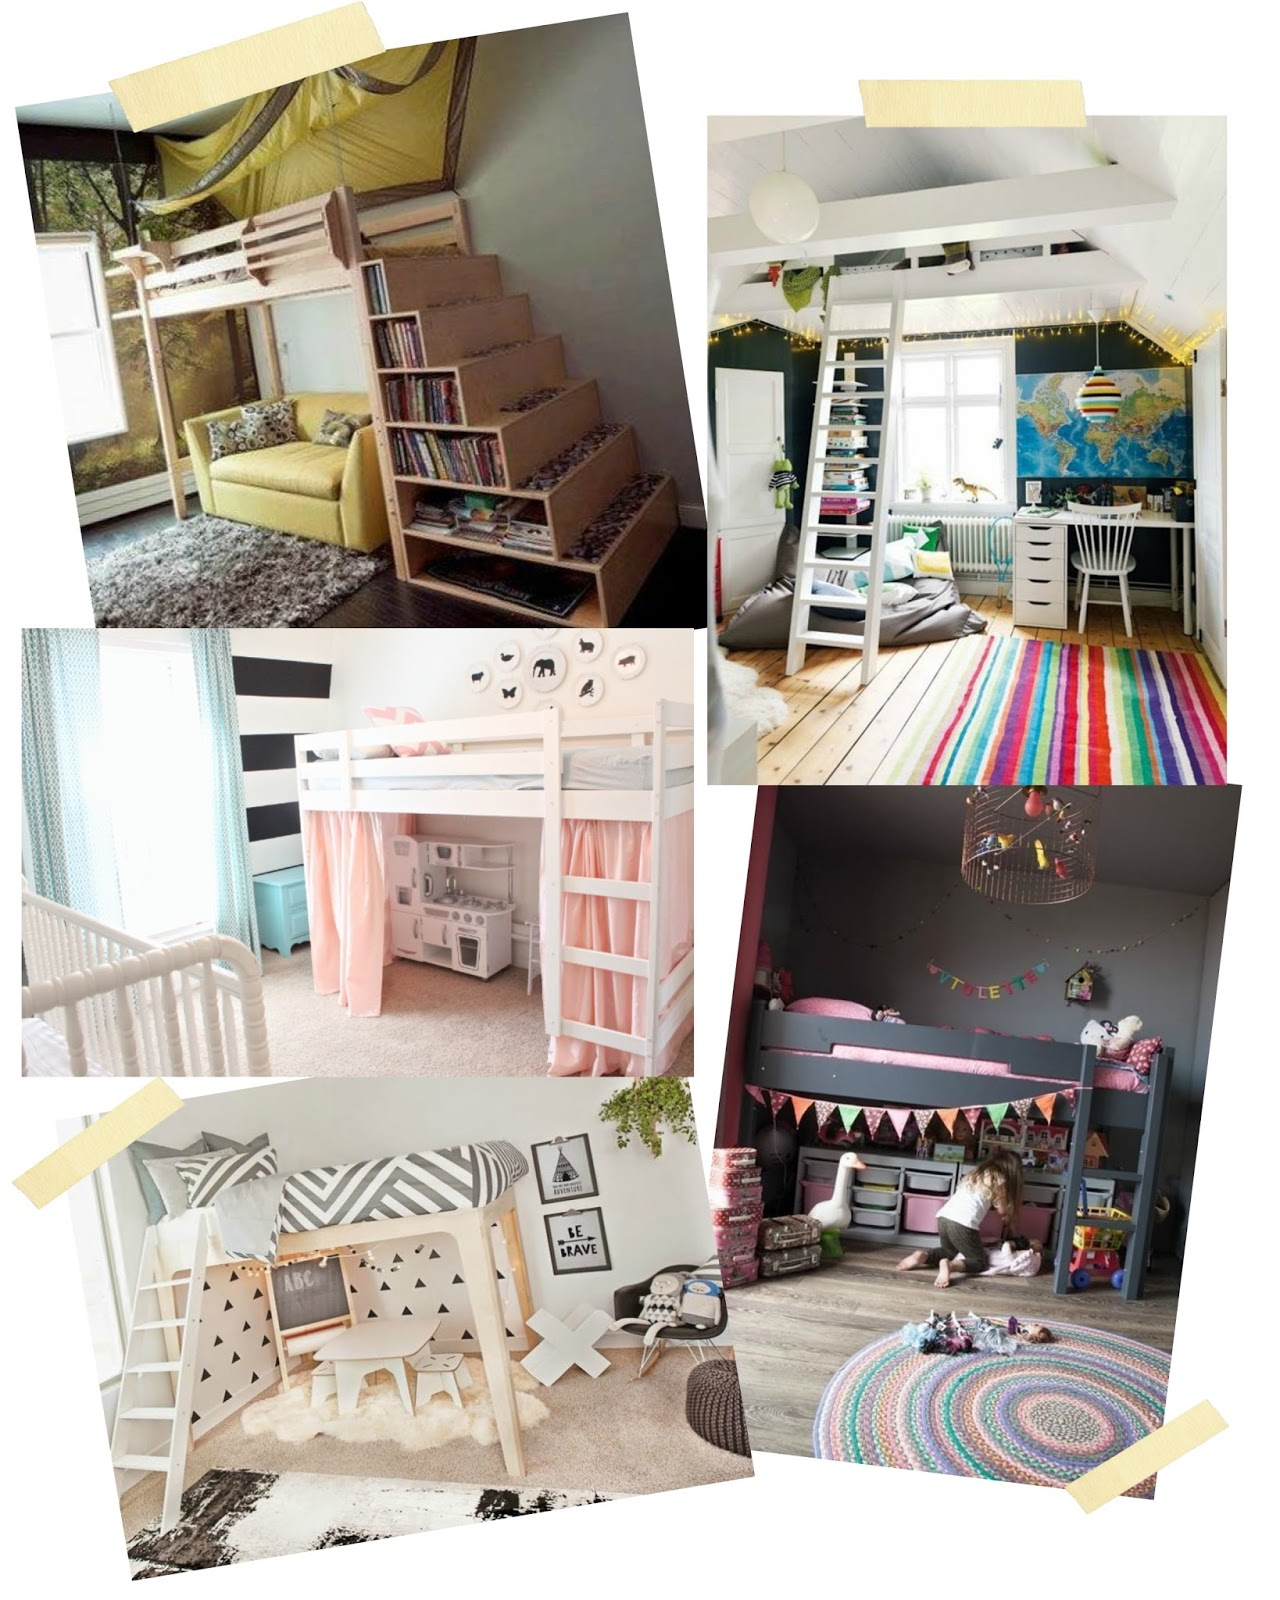 How To Create A Loft Style Kids Bed The Easy Way With